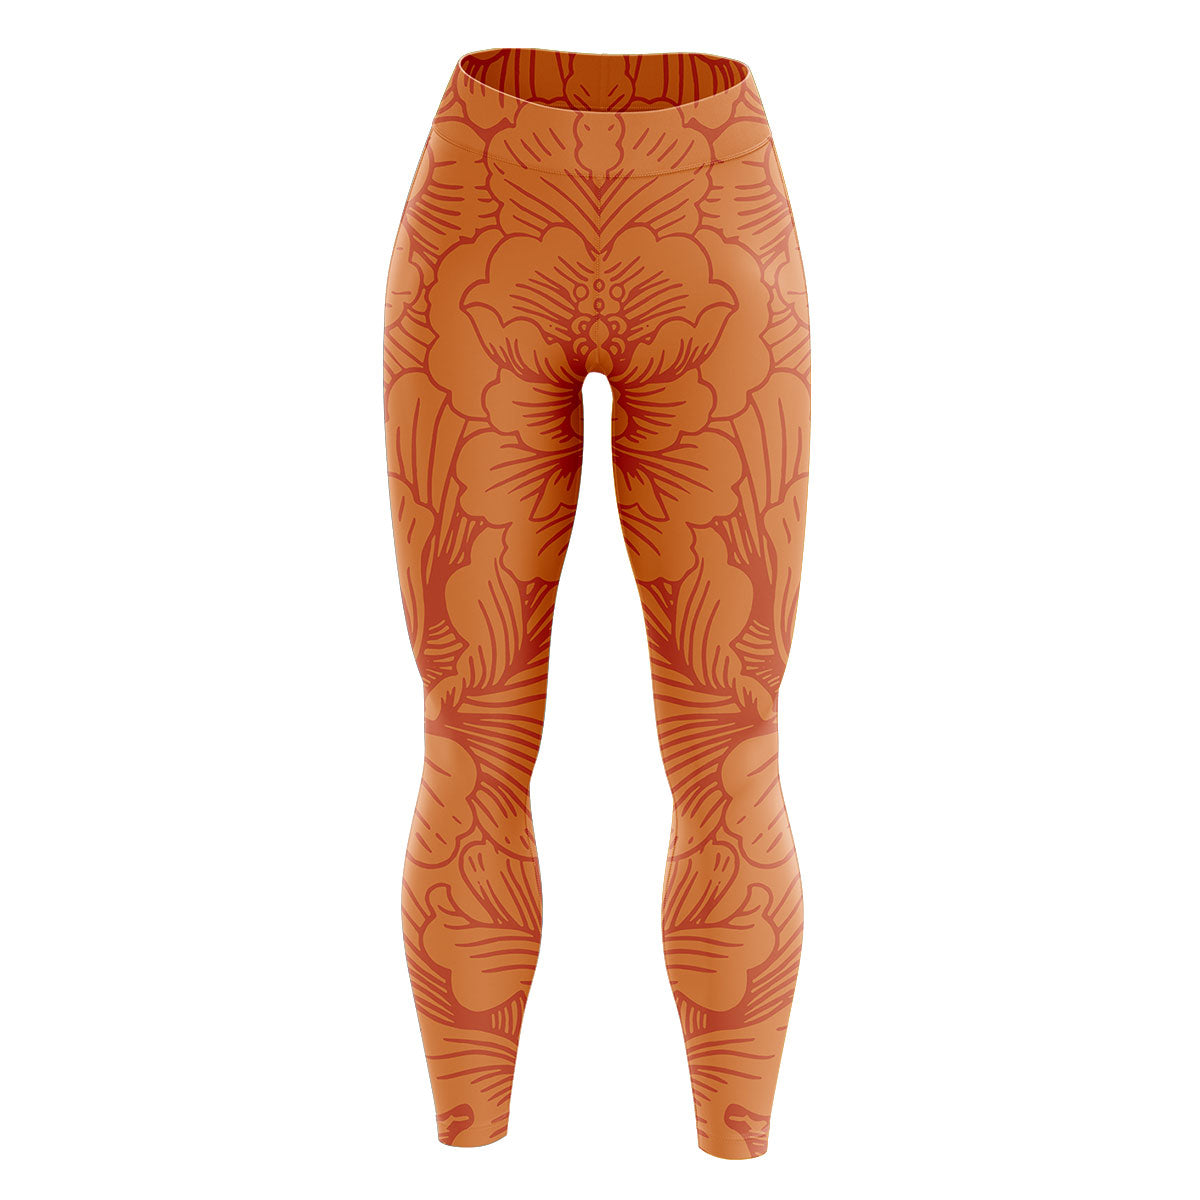 Orange Floral High Waisted Yoga Leggings